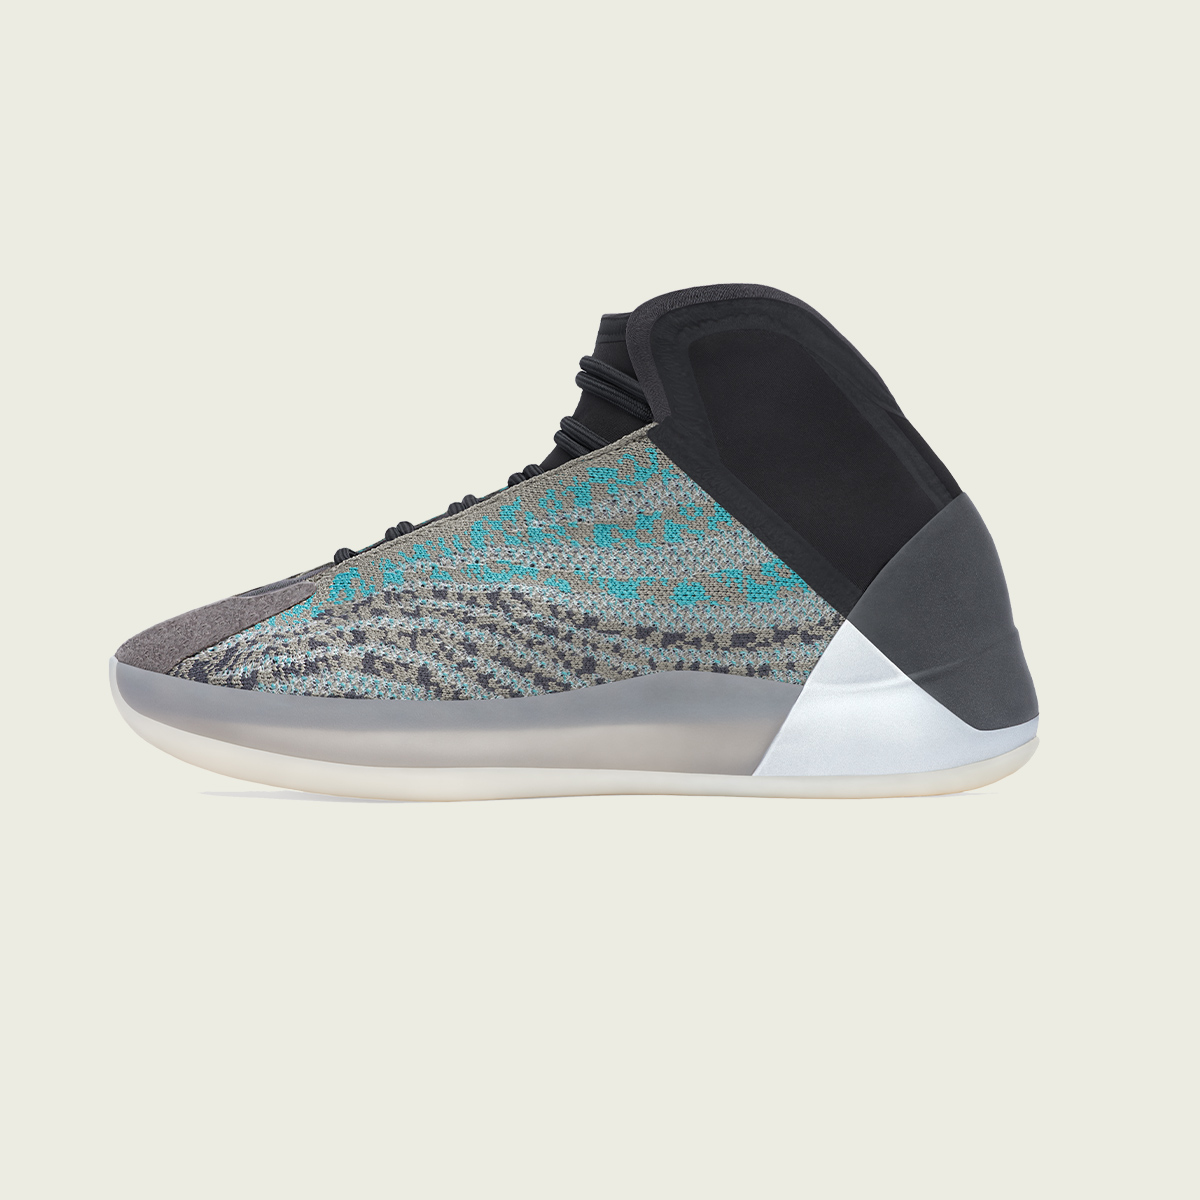 adidas YEEZY QNTM 'Teal Blue' | Raffles Closed!